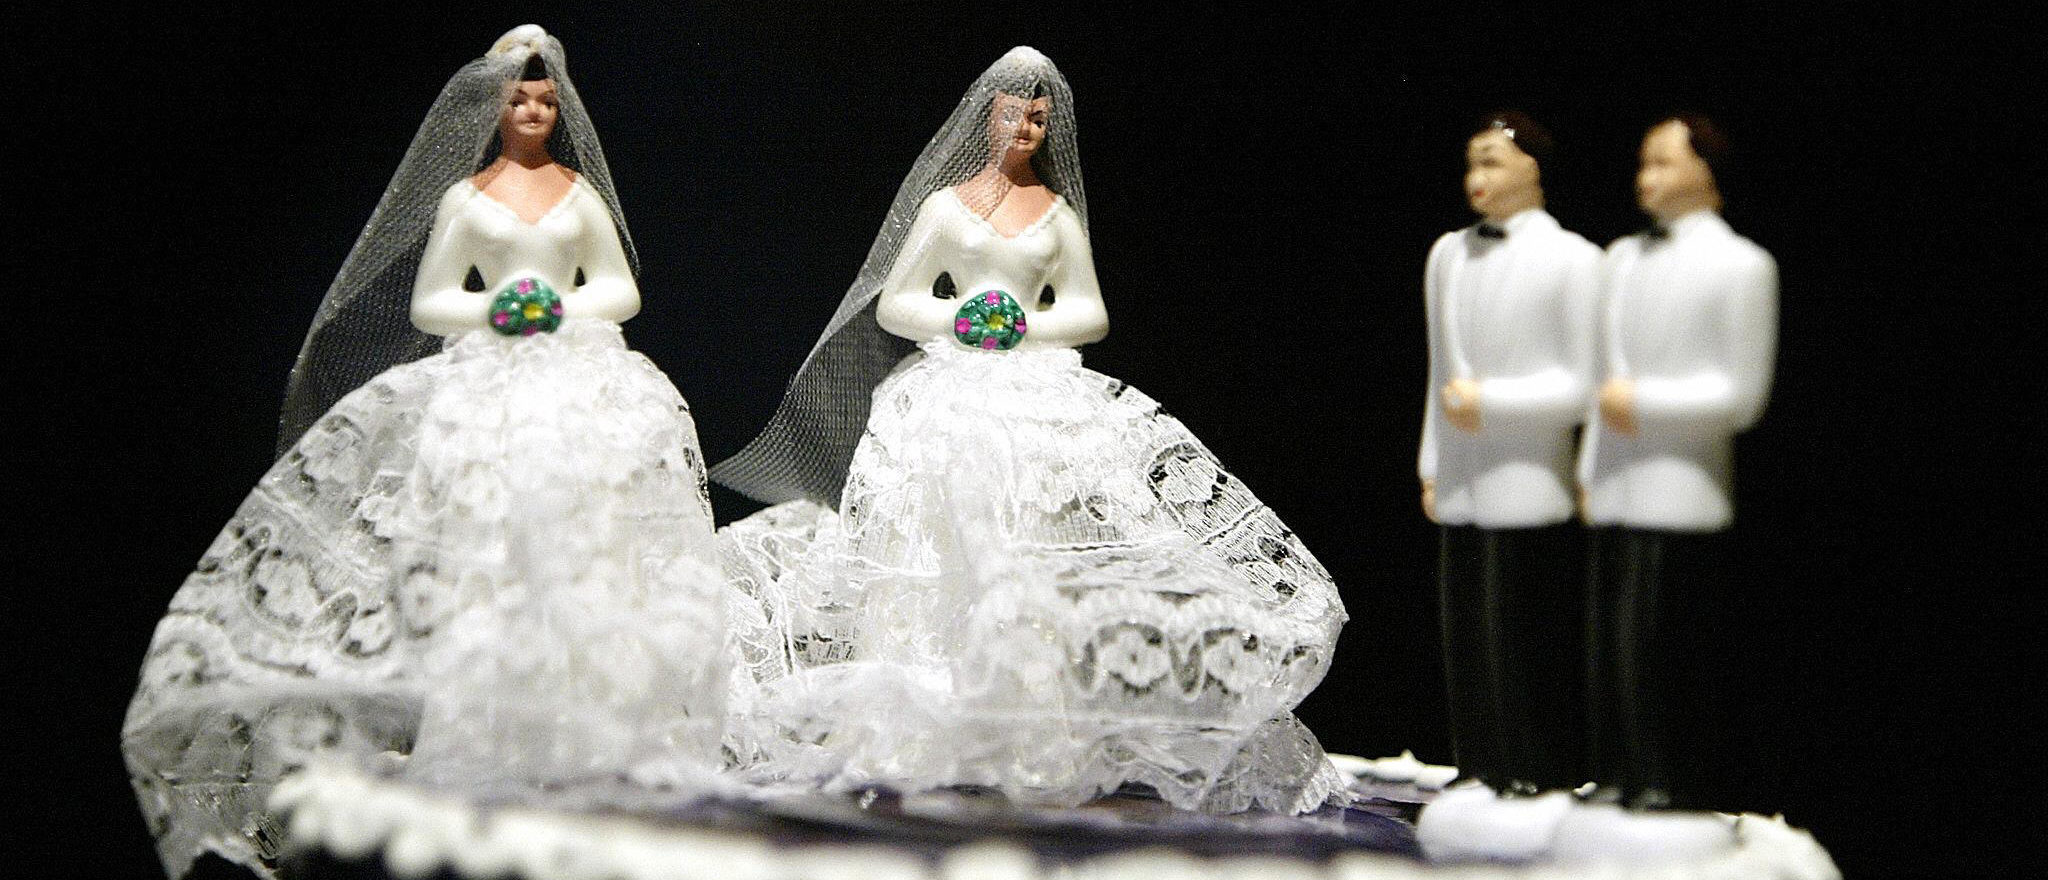 refusing service to same sex couples in Dayton